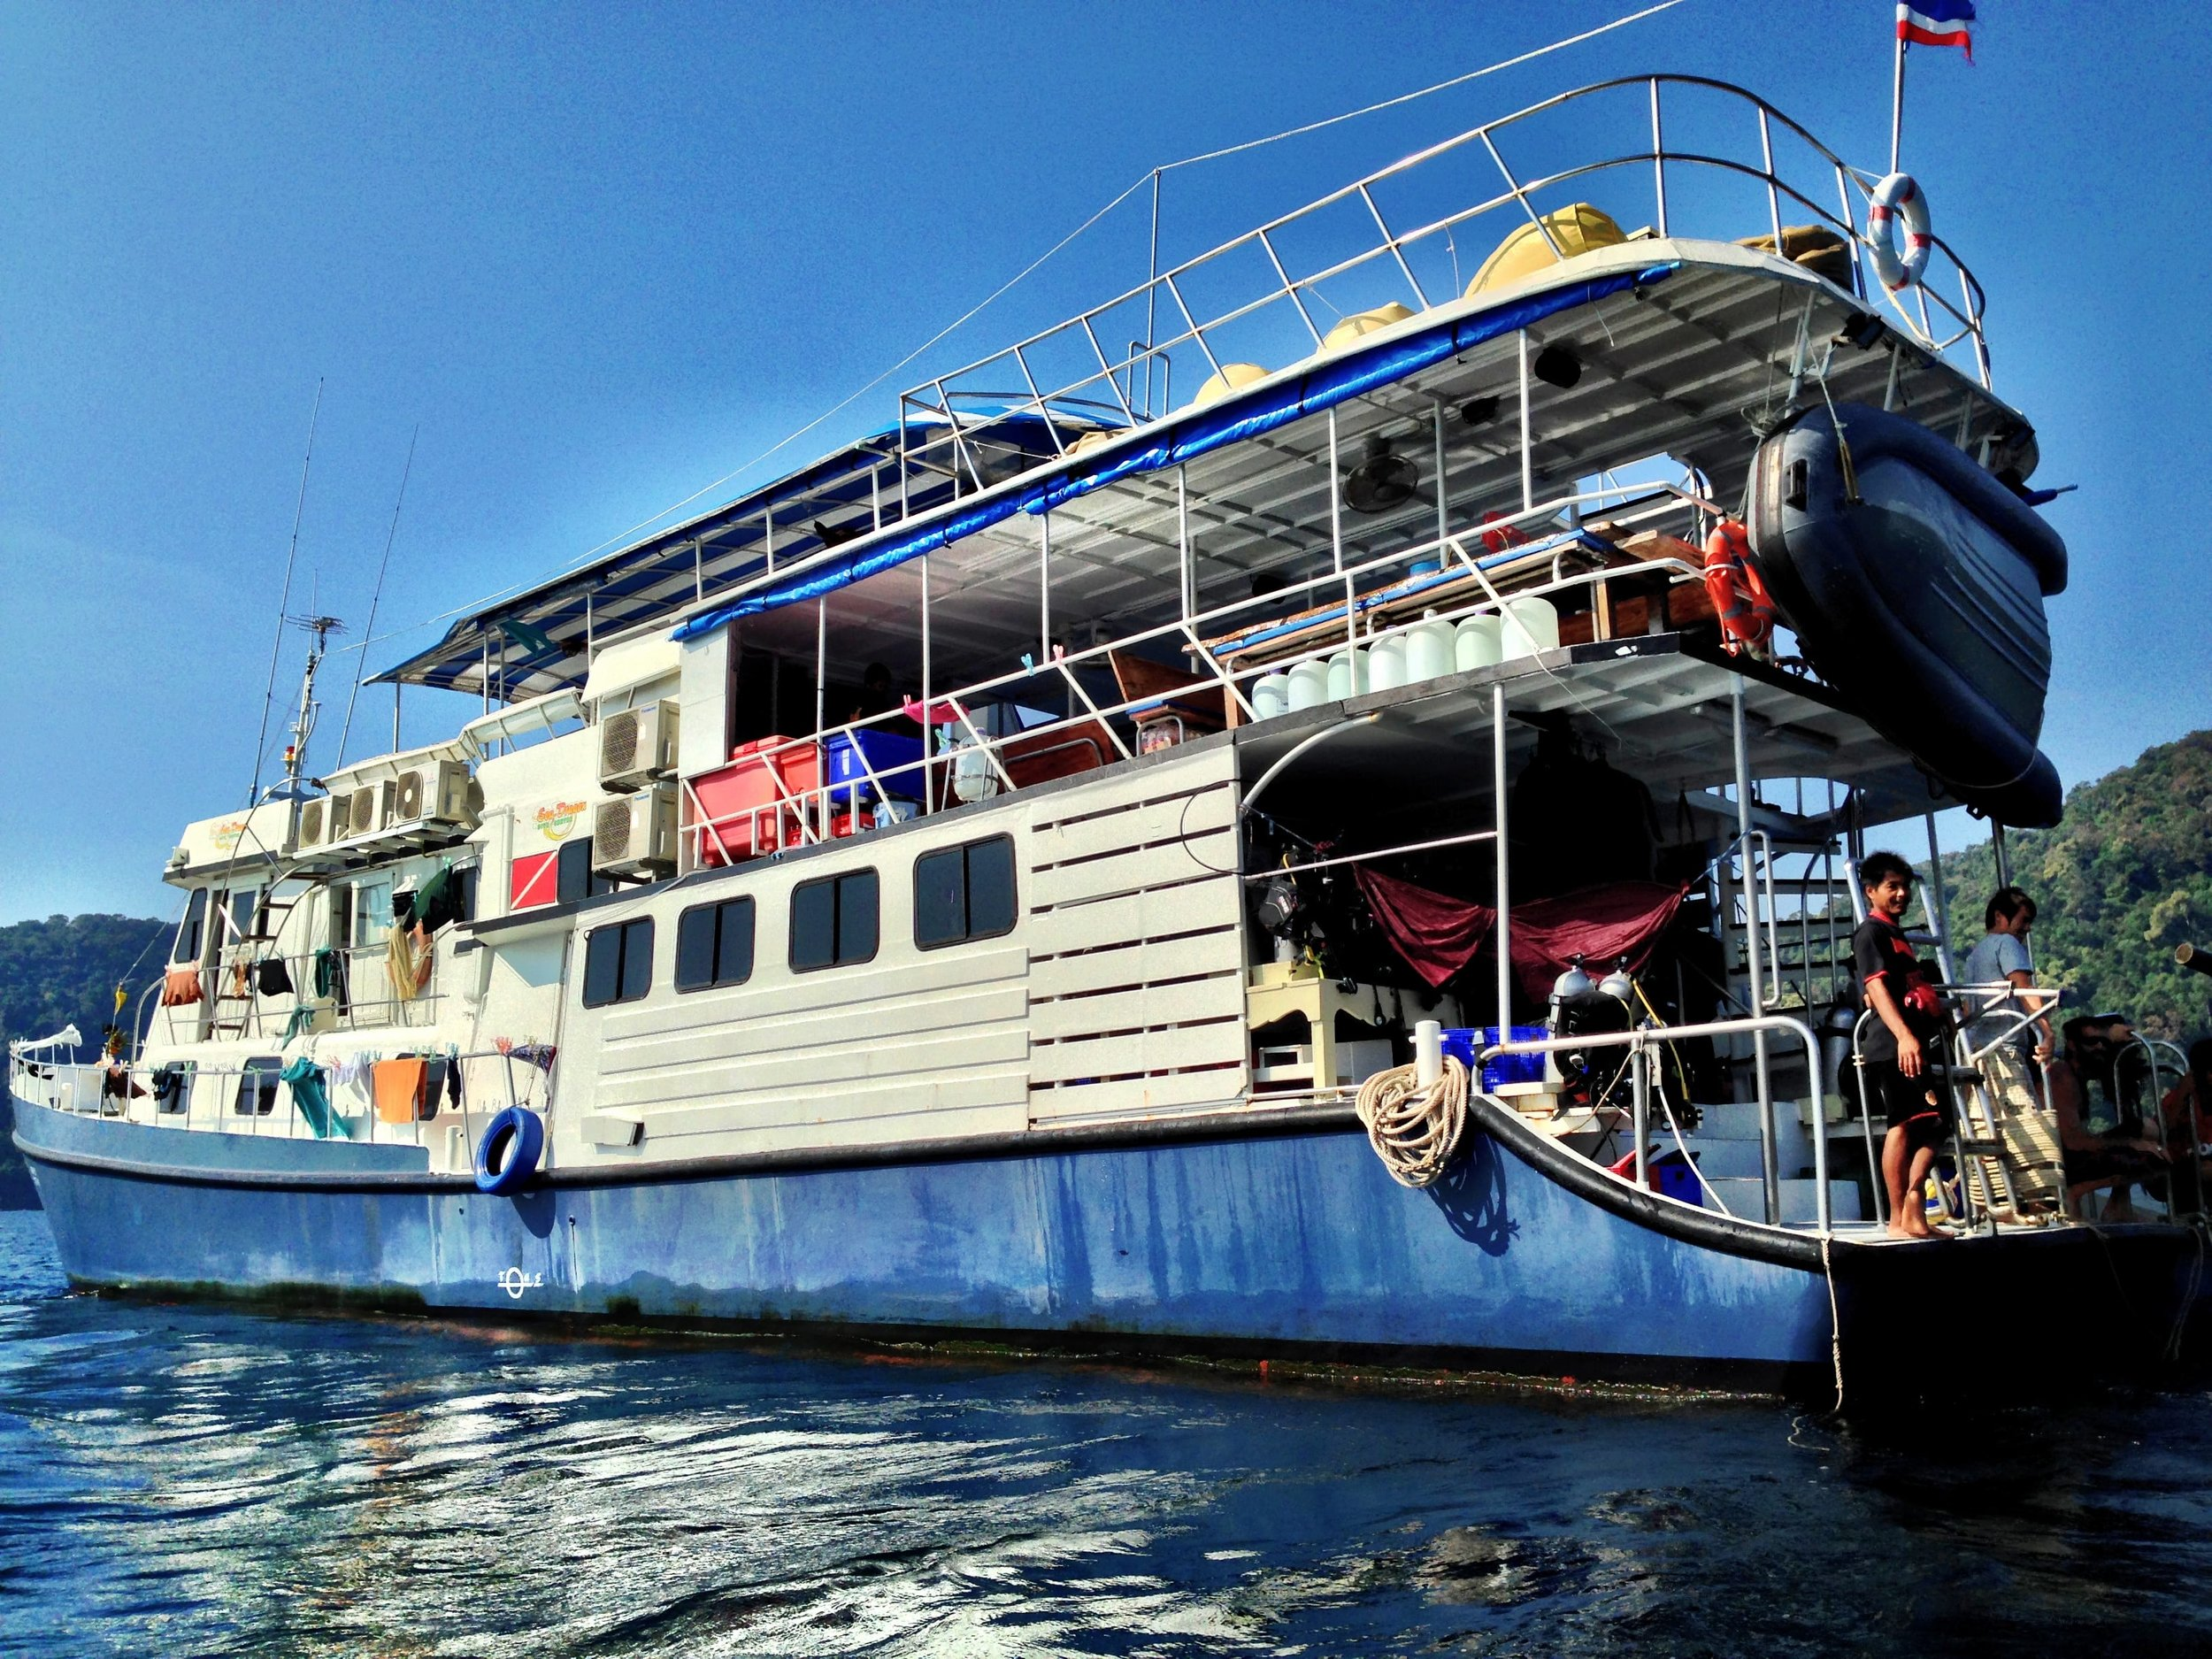 The Best Scuba Diving in Thailand. Sea Dragon Dive Center M/V Andaman SCUBA Live aboard boat. Dive Sites in Thailand. FenerAdventures.com Budget Travel Tips